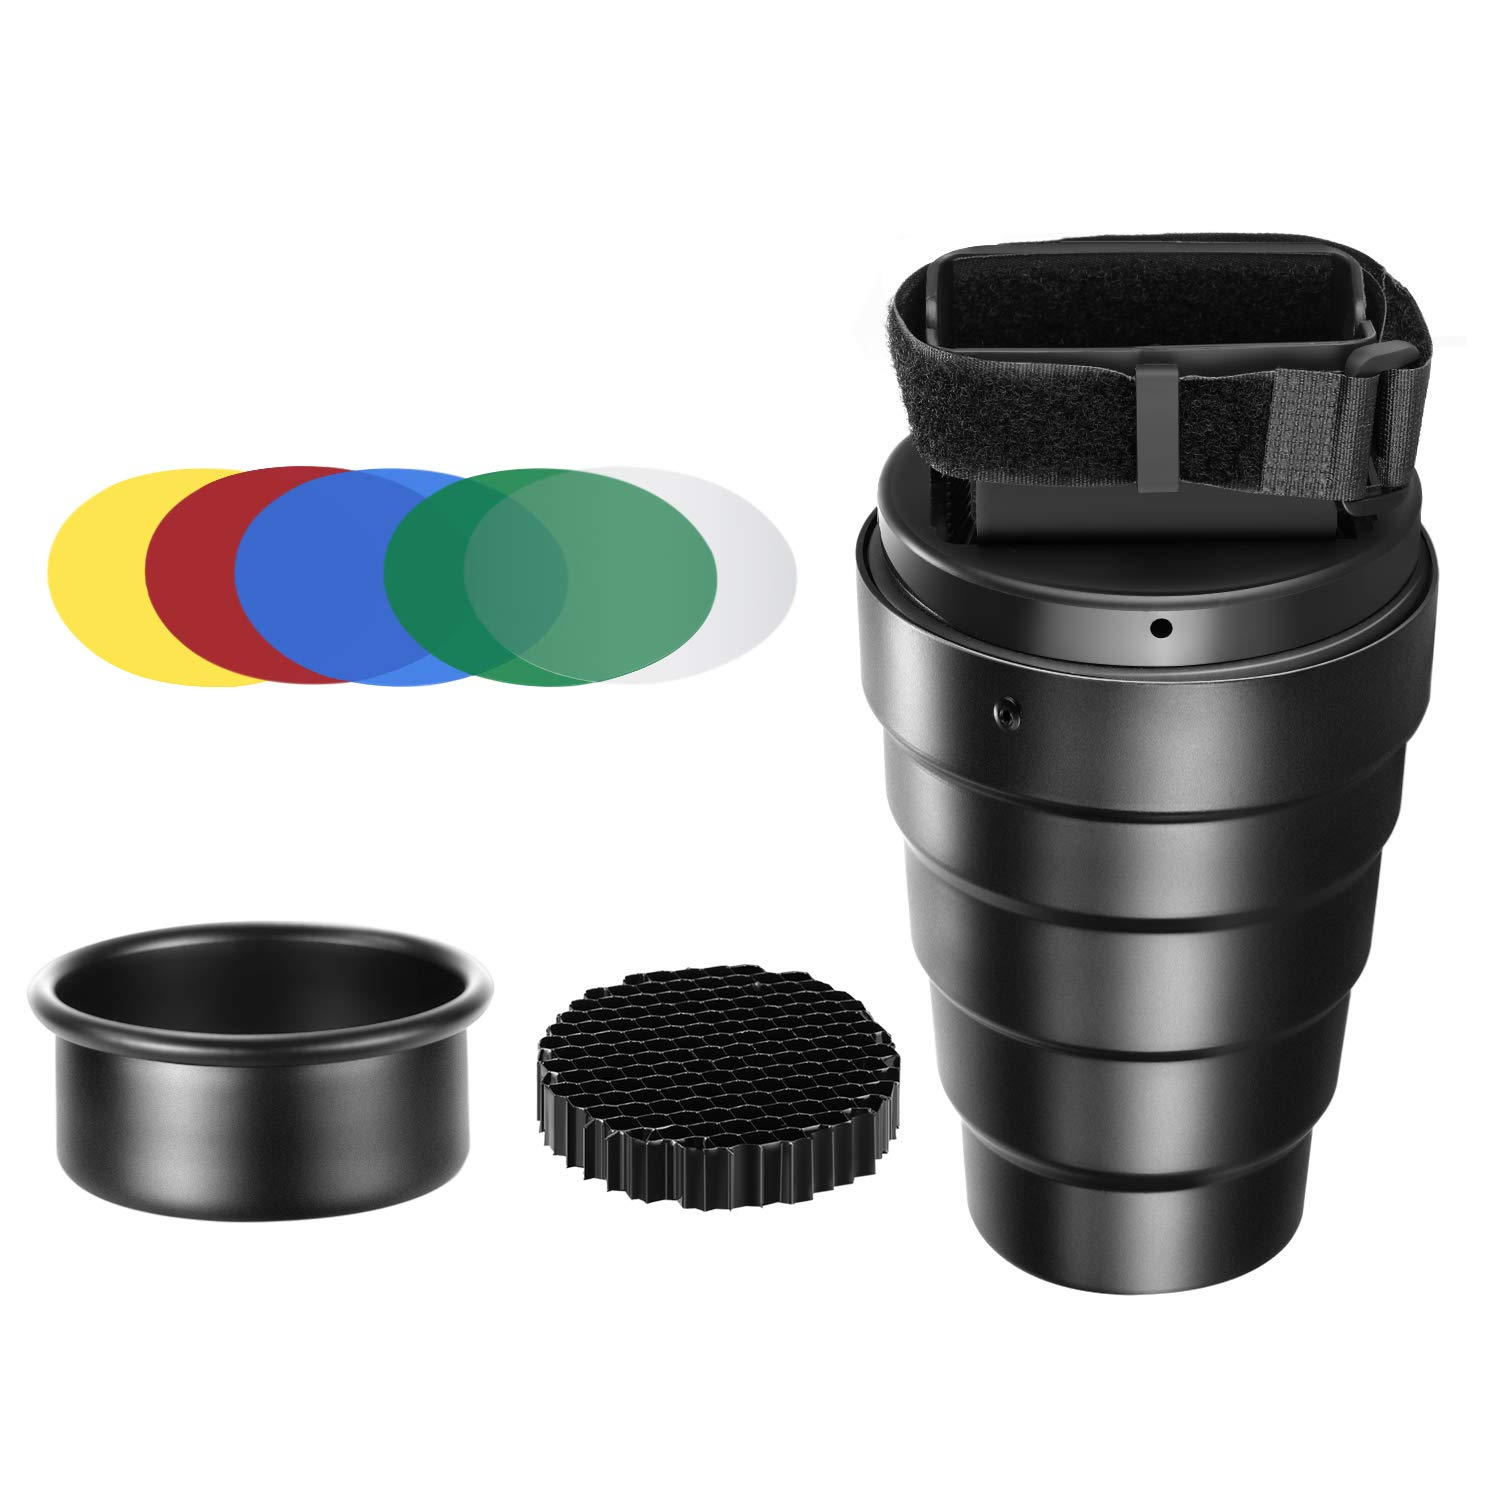 Neewer Aluminium Alloy Conical Snoot Kit with Honeycomb Grid and 5 Pieces Color Gel Filters for Canon Nikon TT560 NW561 NW562 NW565 NW620 NW630 NW680 NW670 750II NW910 NW880 Flash Speedlites 10093793